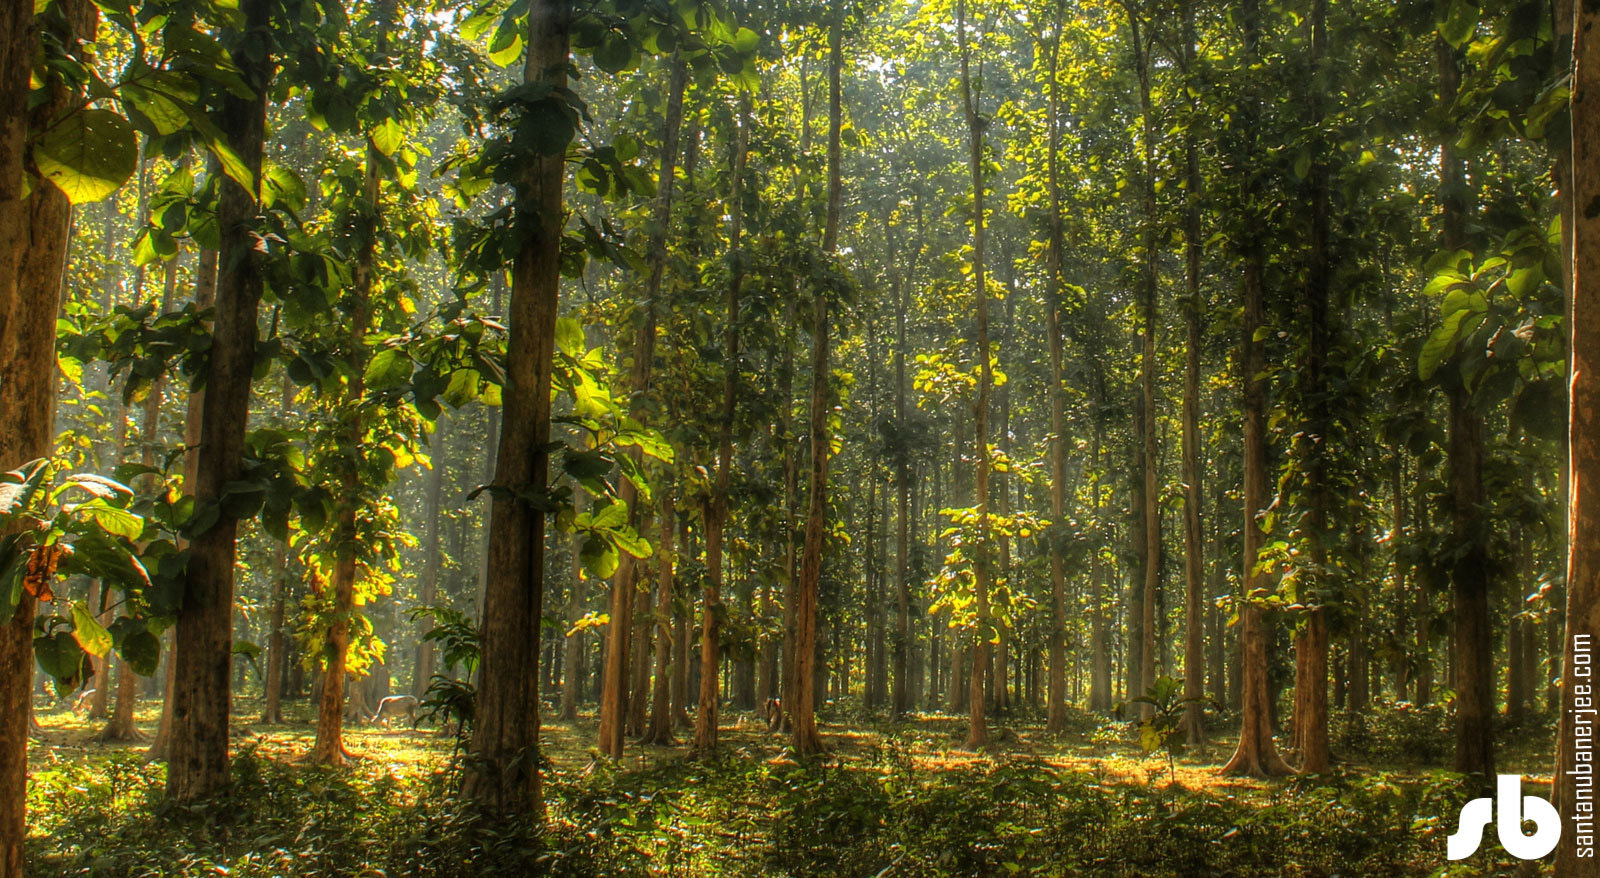 Photograph Forest by Santanu Banerjee on 500px